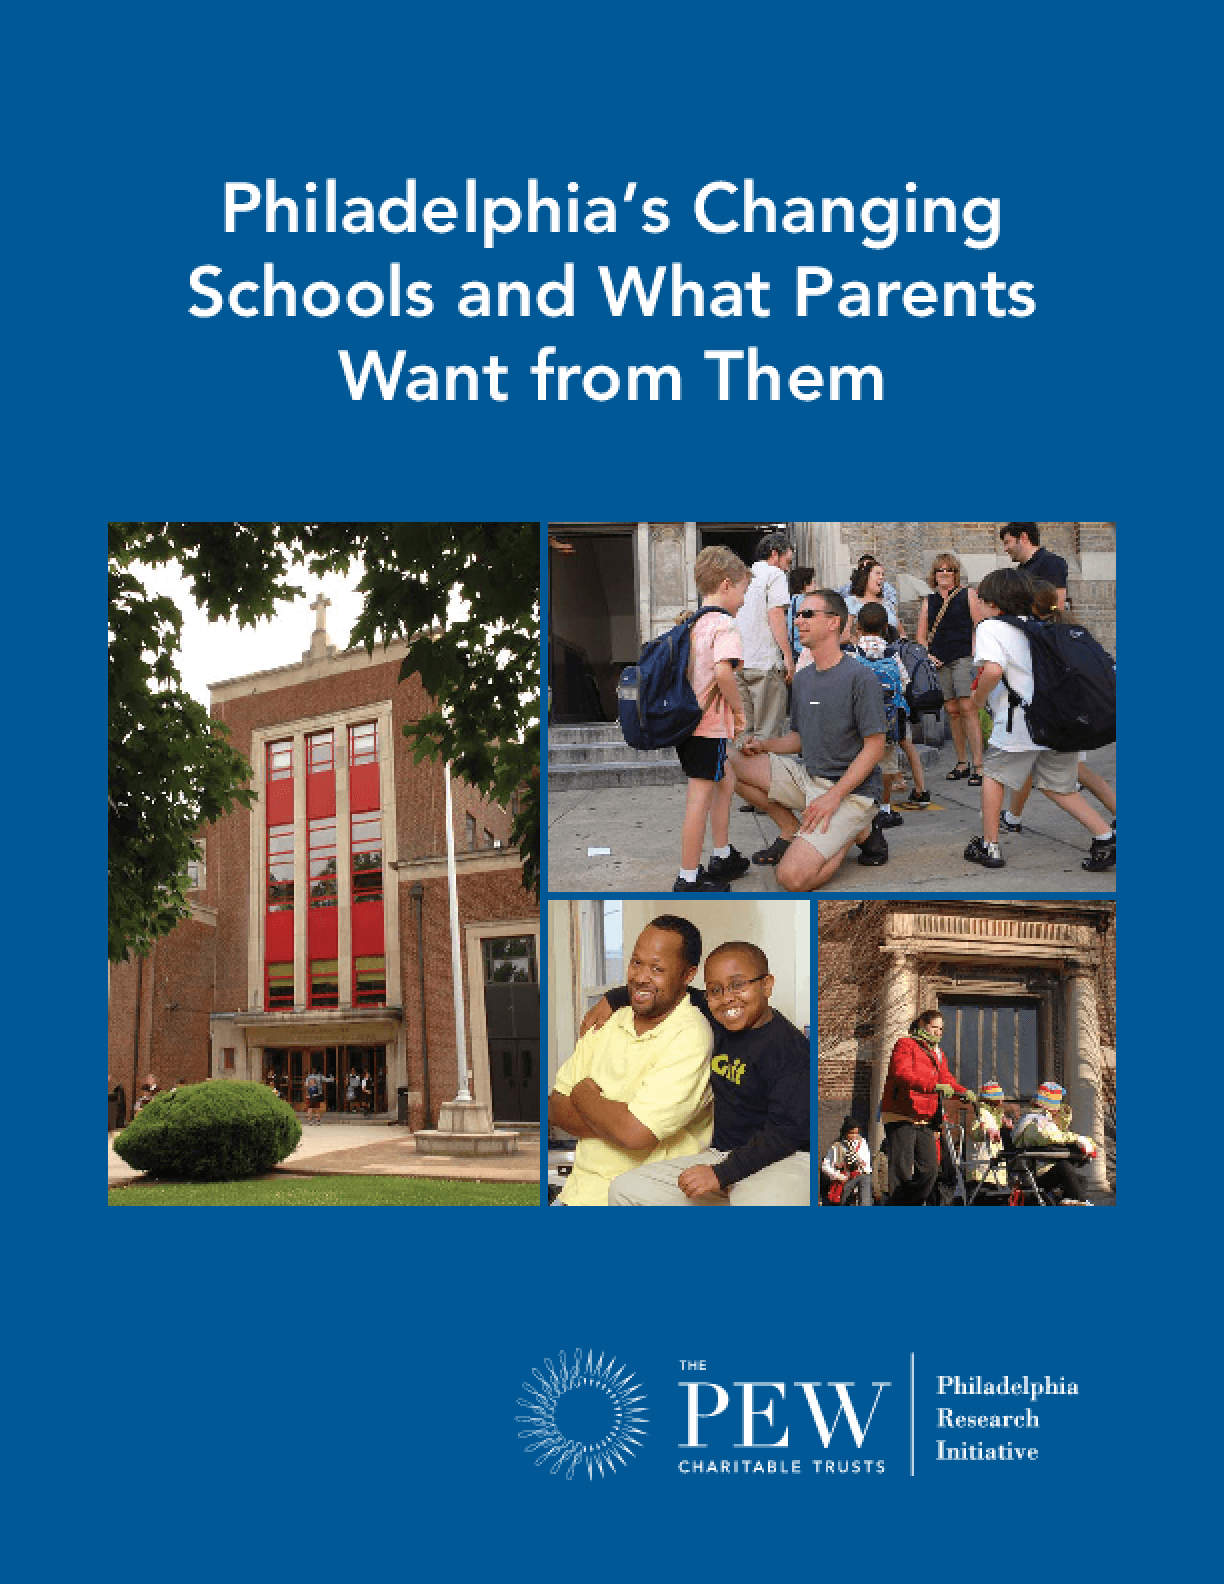 Philadelphia's Changing Schools and What Parents Want From Them